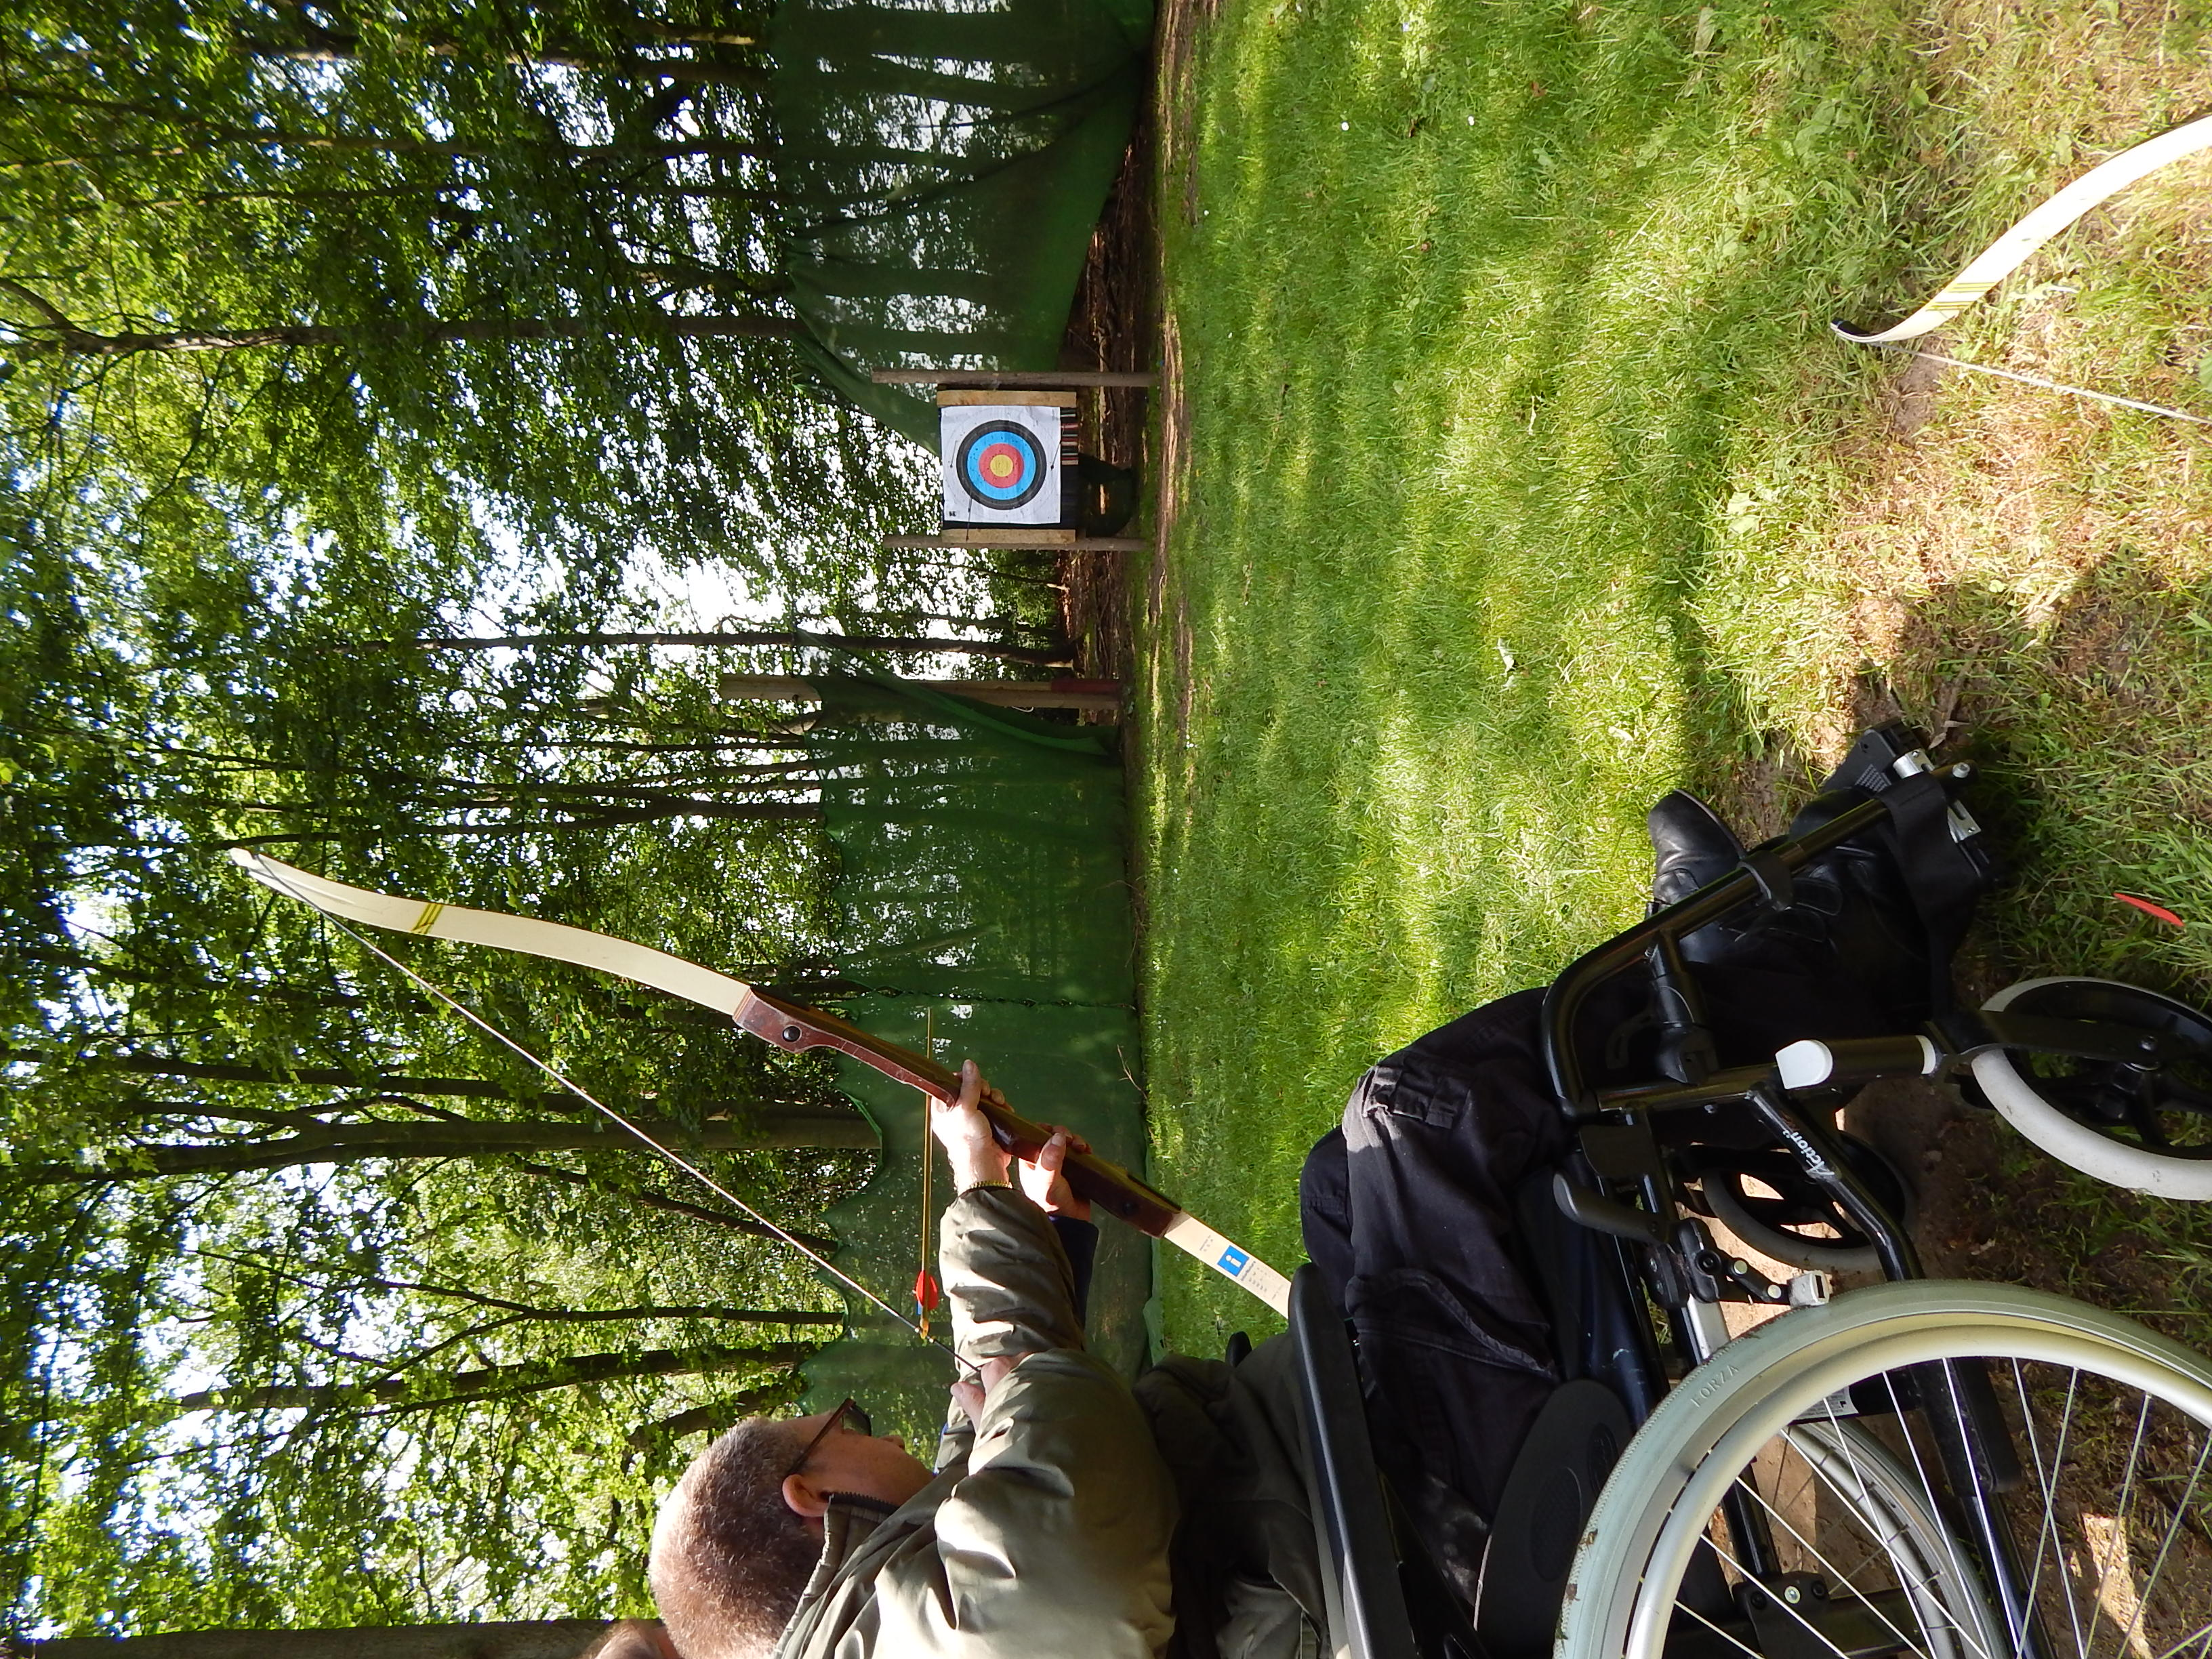 A man in a wheelchair doing archery on grass with woods behind.